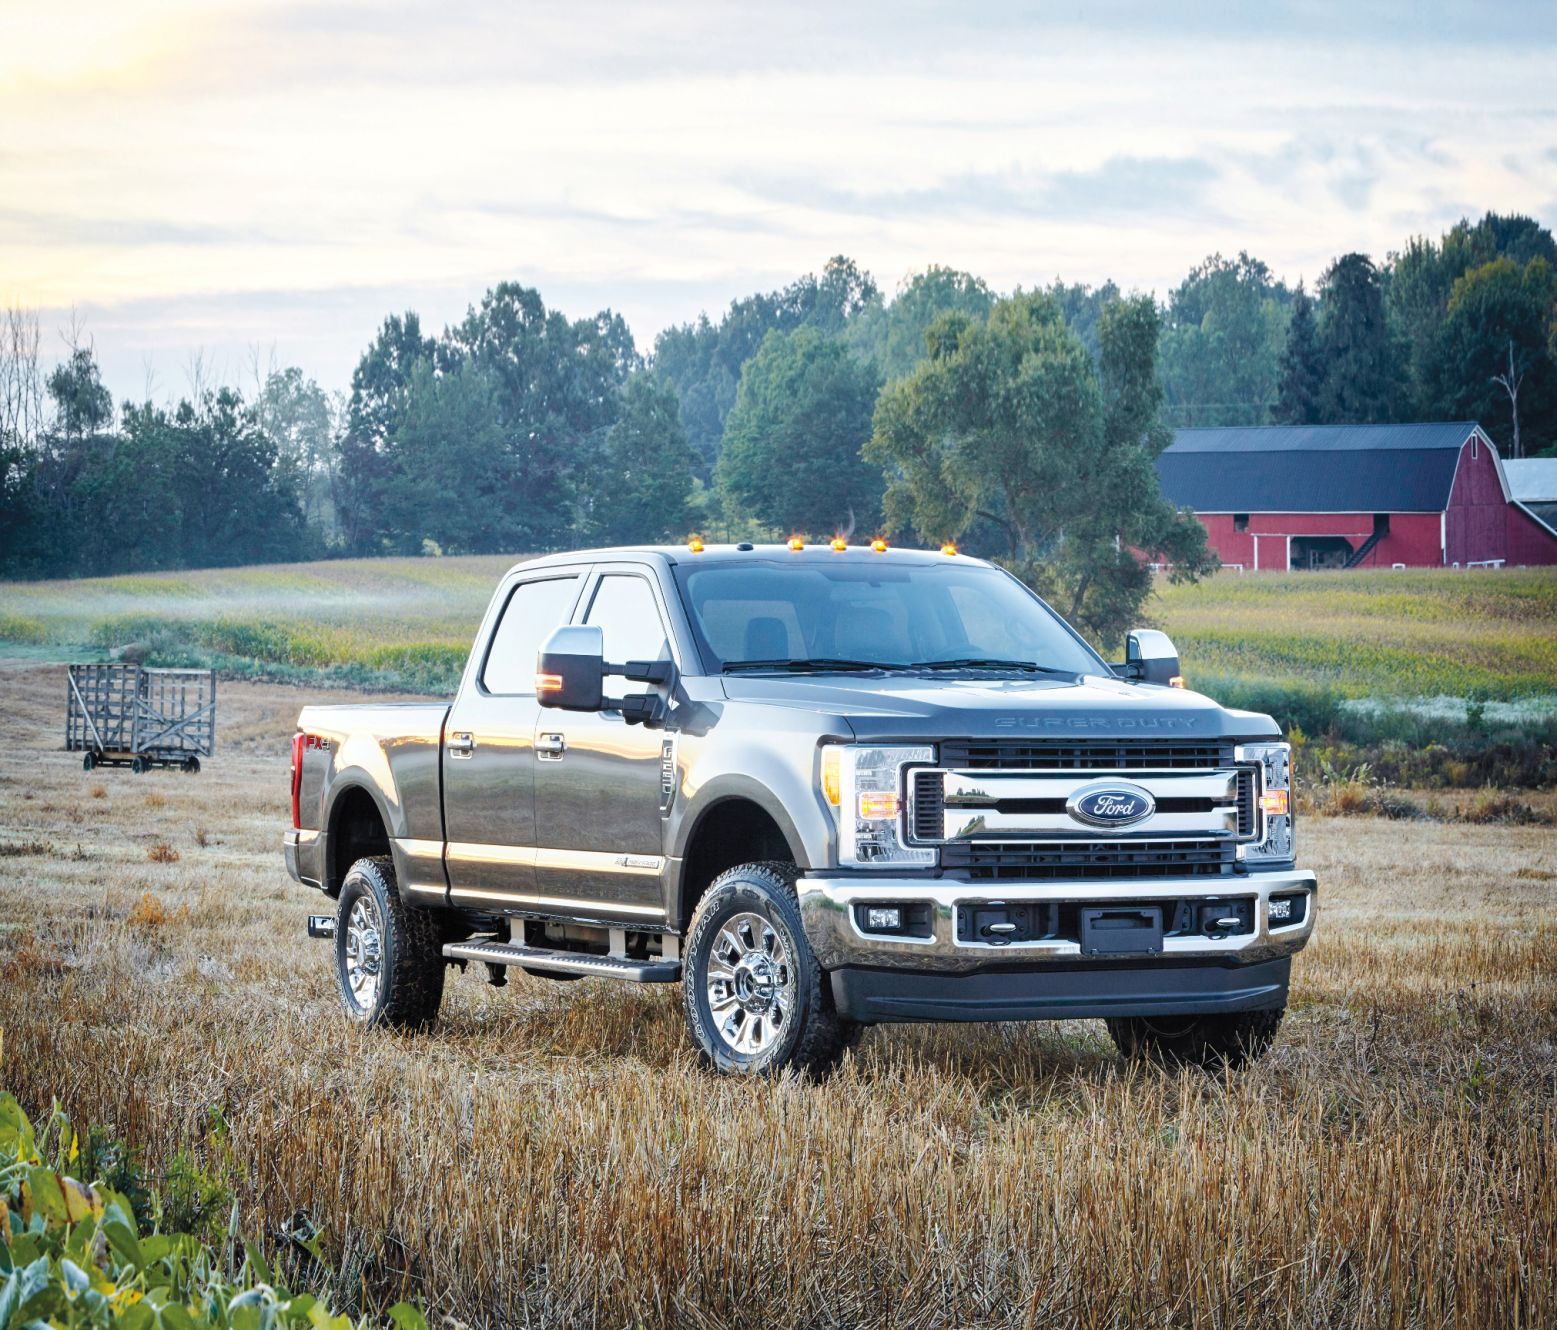 2018 Ford F 250 Super Duty And We Thought Our Platinum Trim Was Plush Automotive Stltoday Com